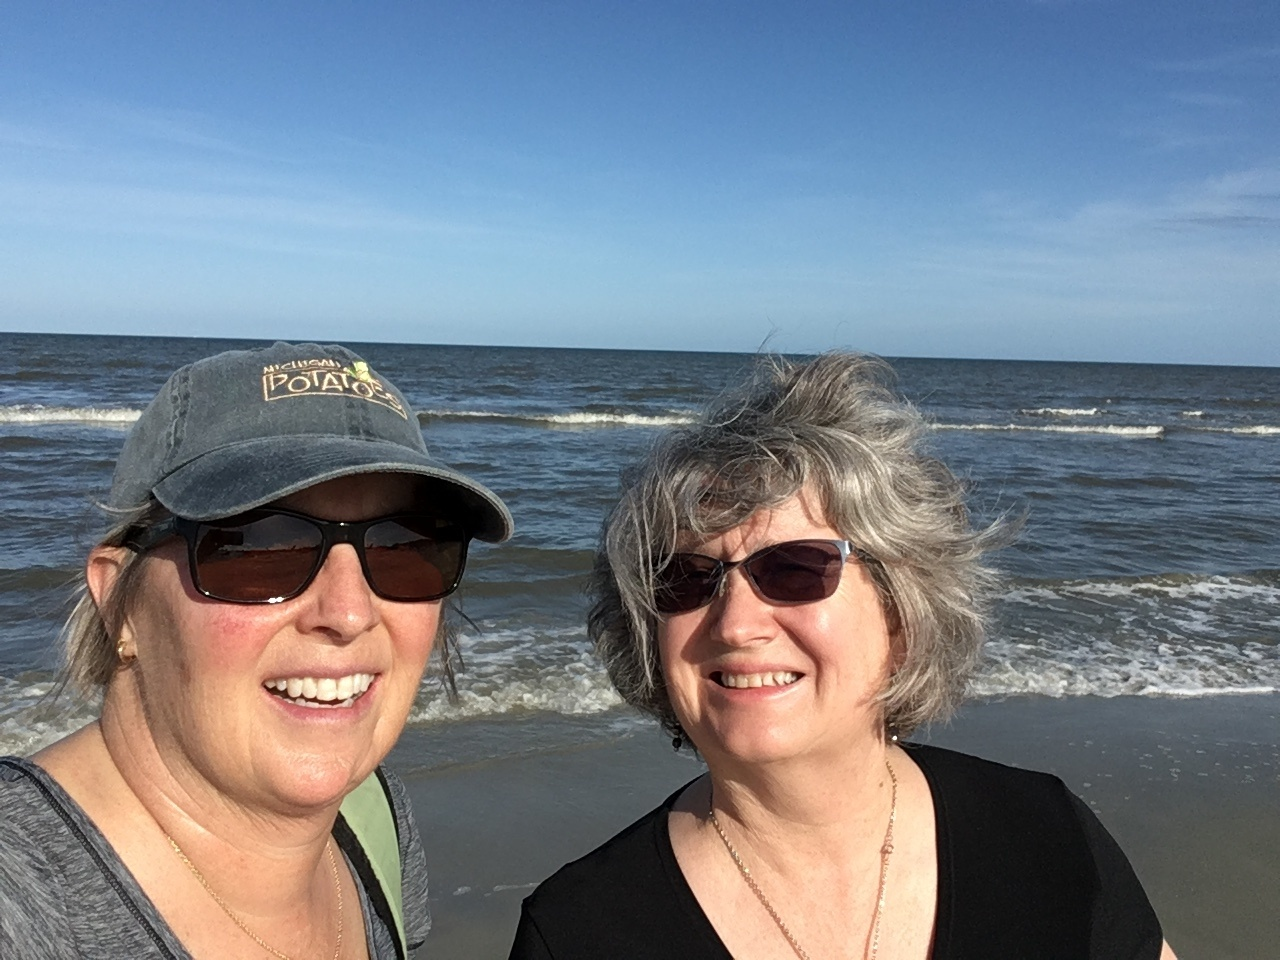 selfie of Kim Vincent and Diane Sontum on a beach with ocean behind